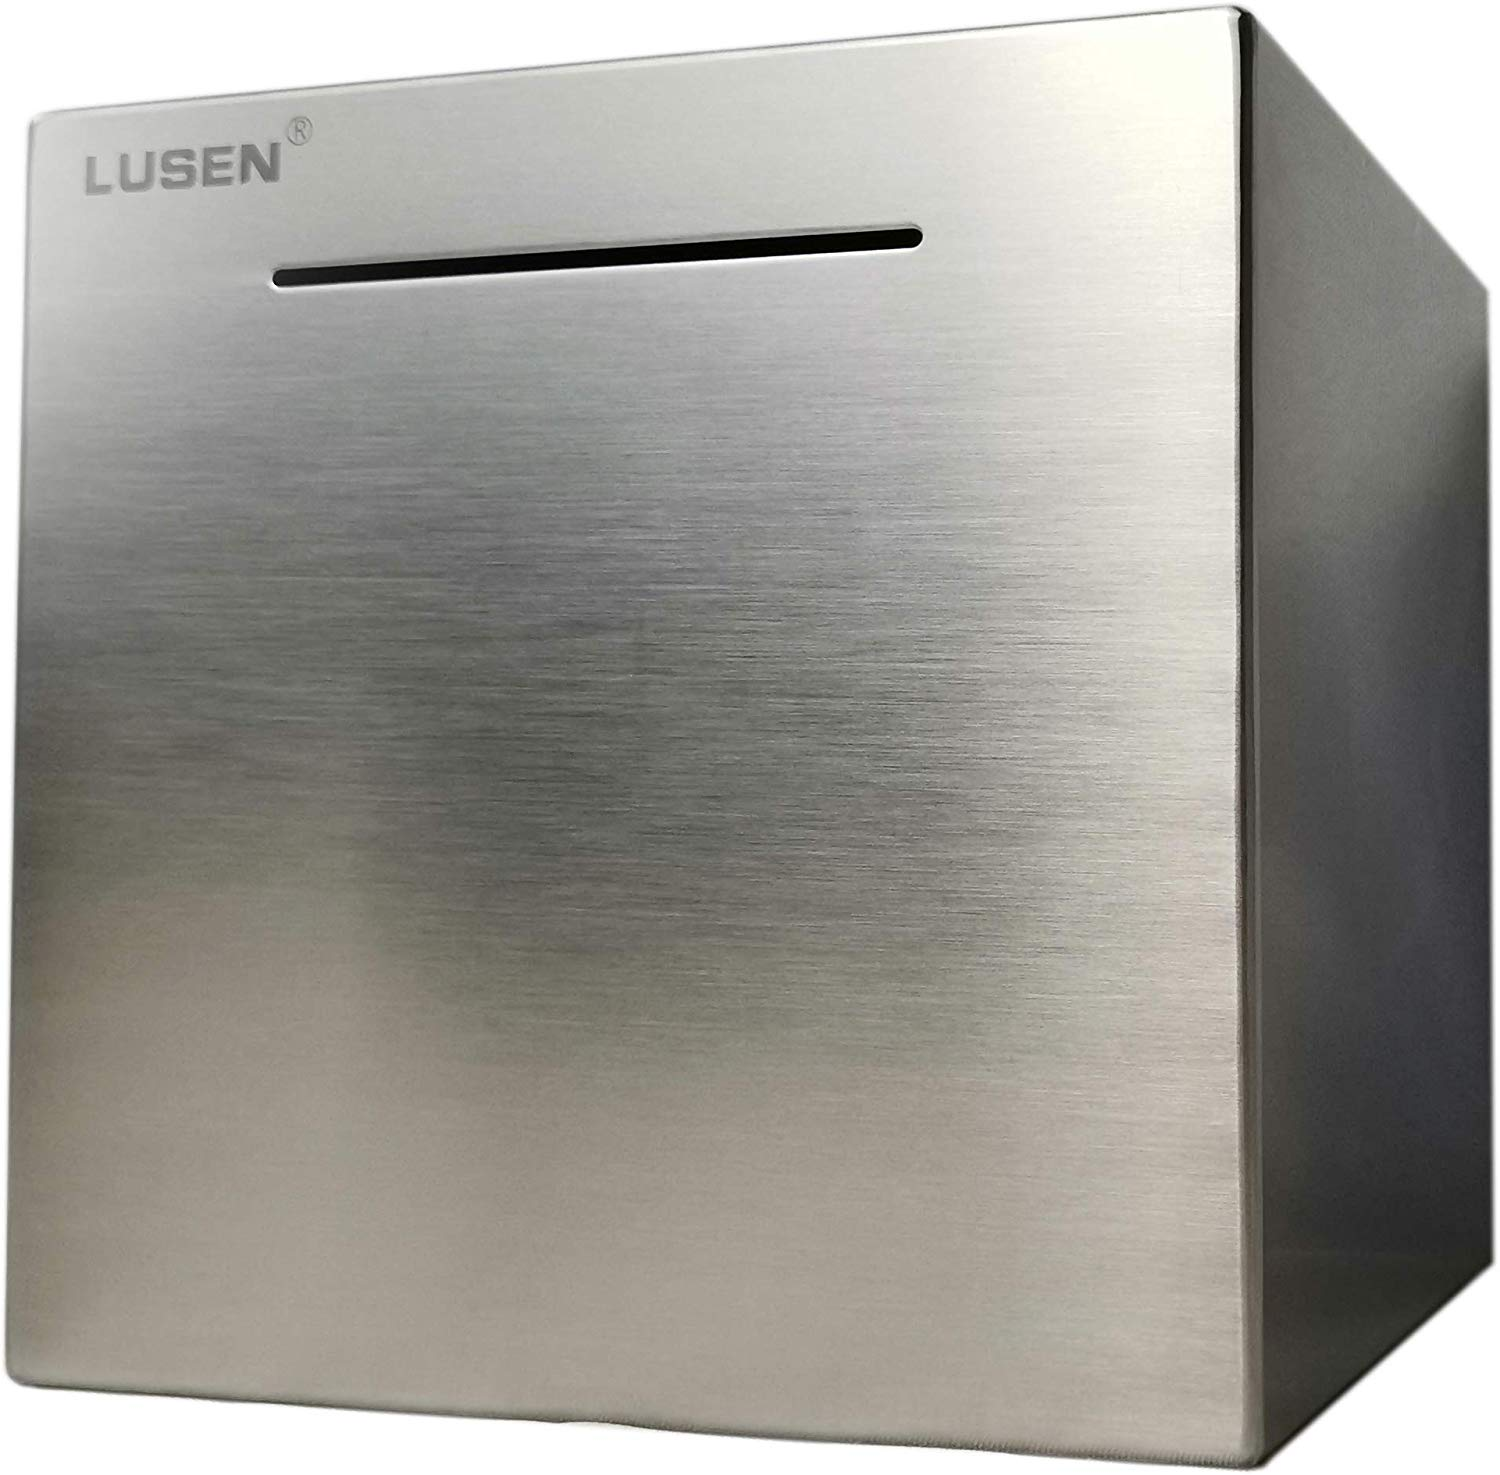 LUSEN Safe Stainless Steel Piggy Bank